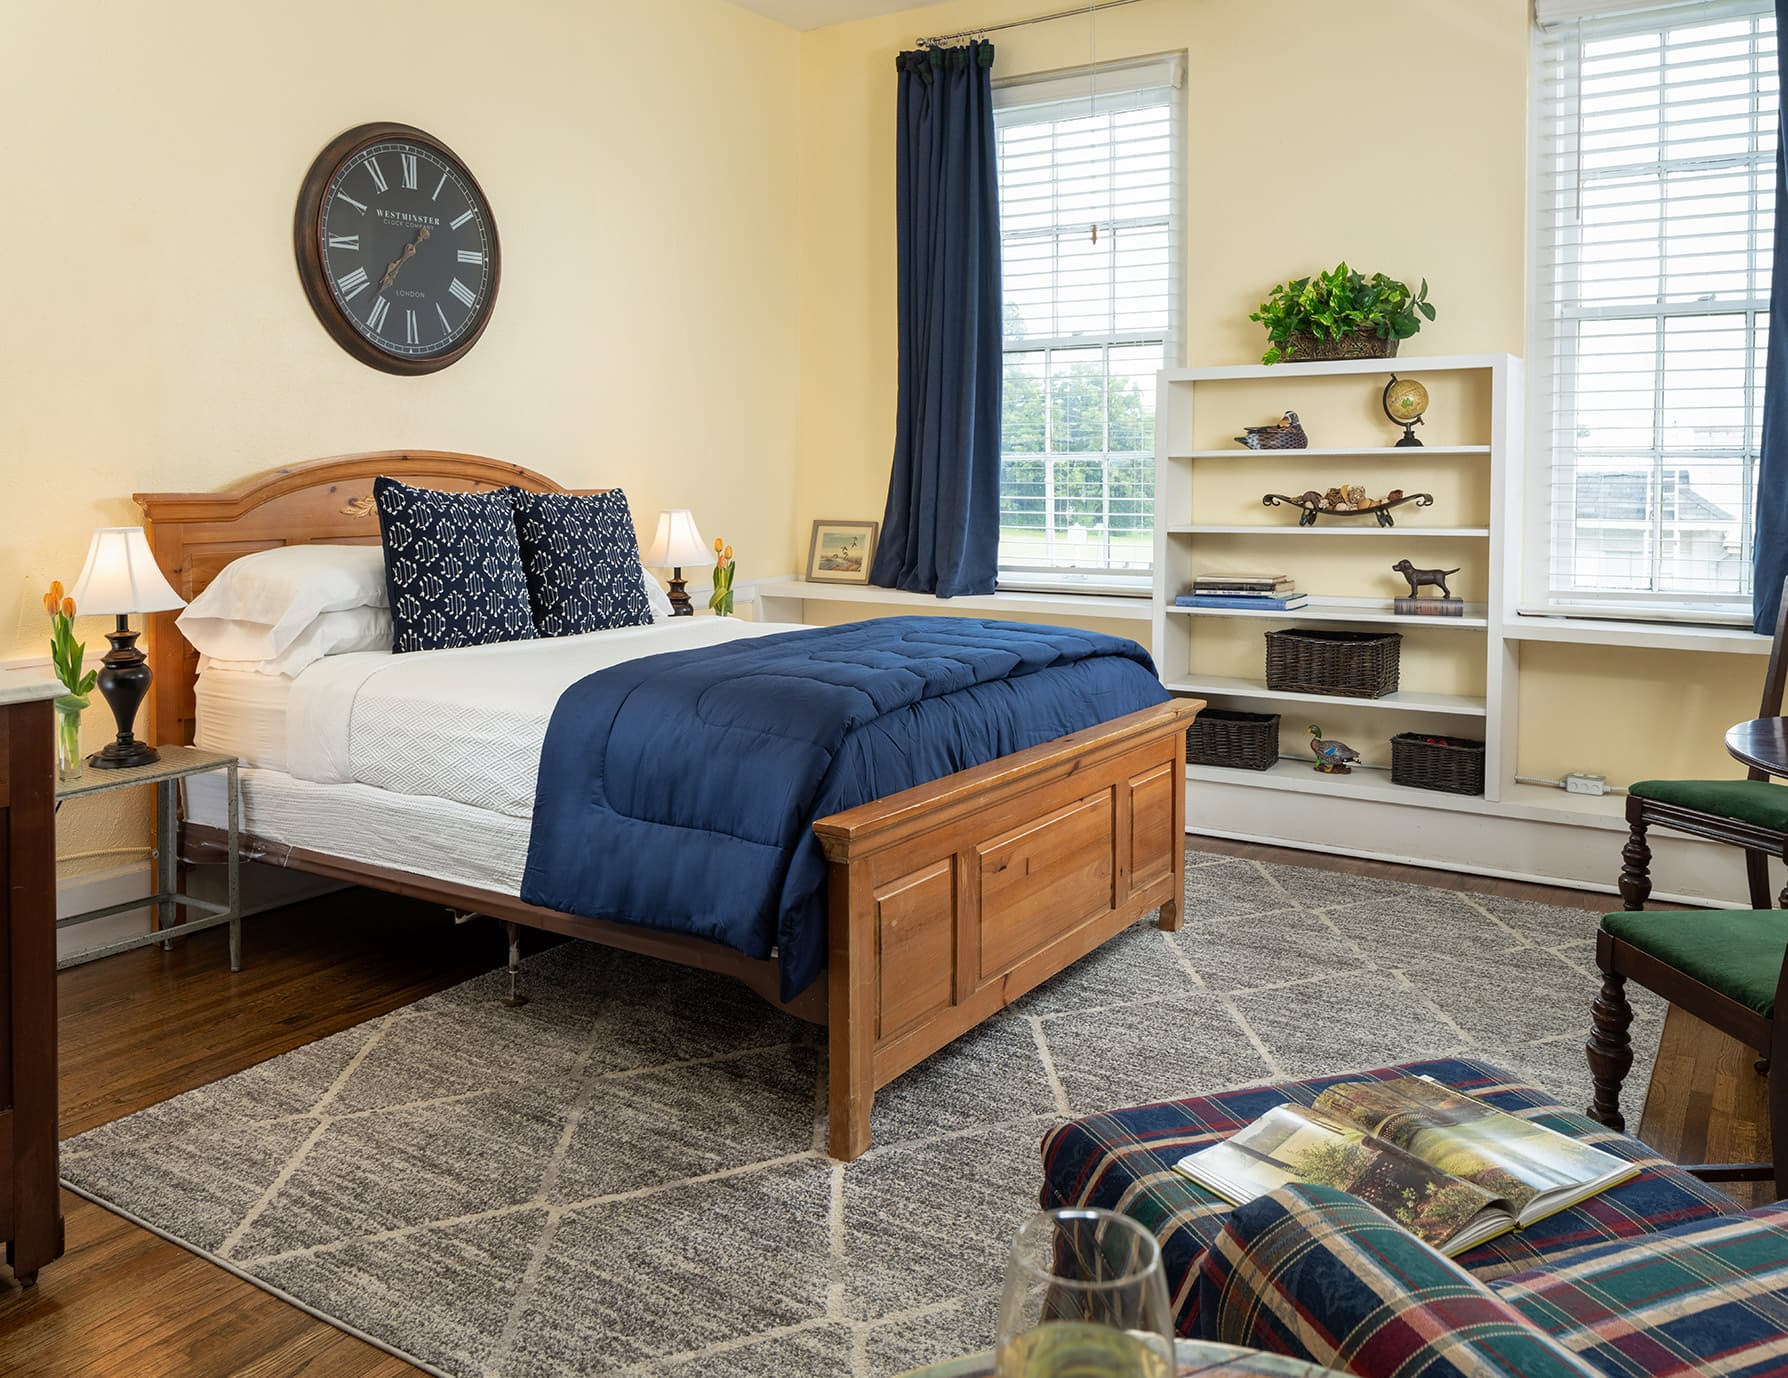 Flyways room bed - romantic lodging in West Tennessee